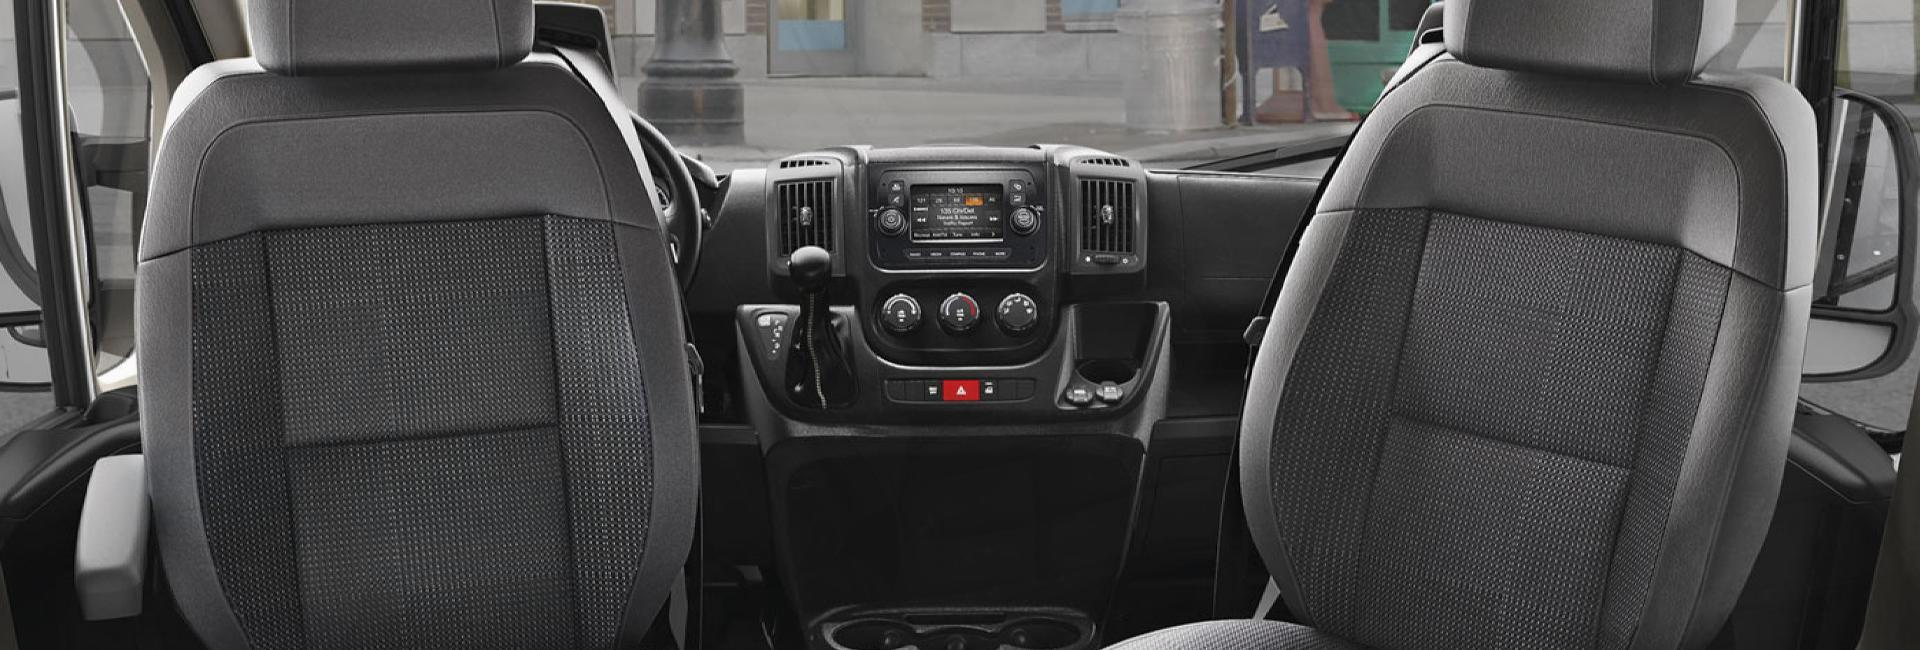 Passenger view of inside a RAM commercial van